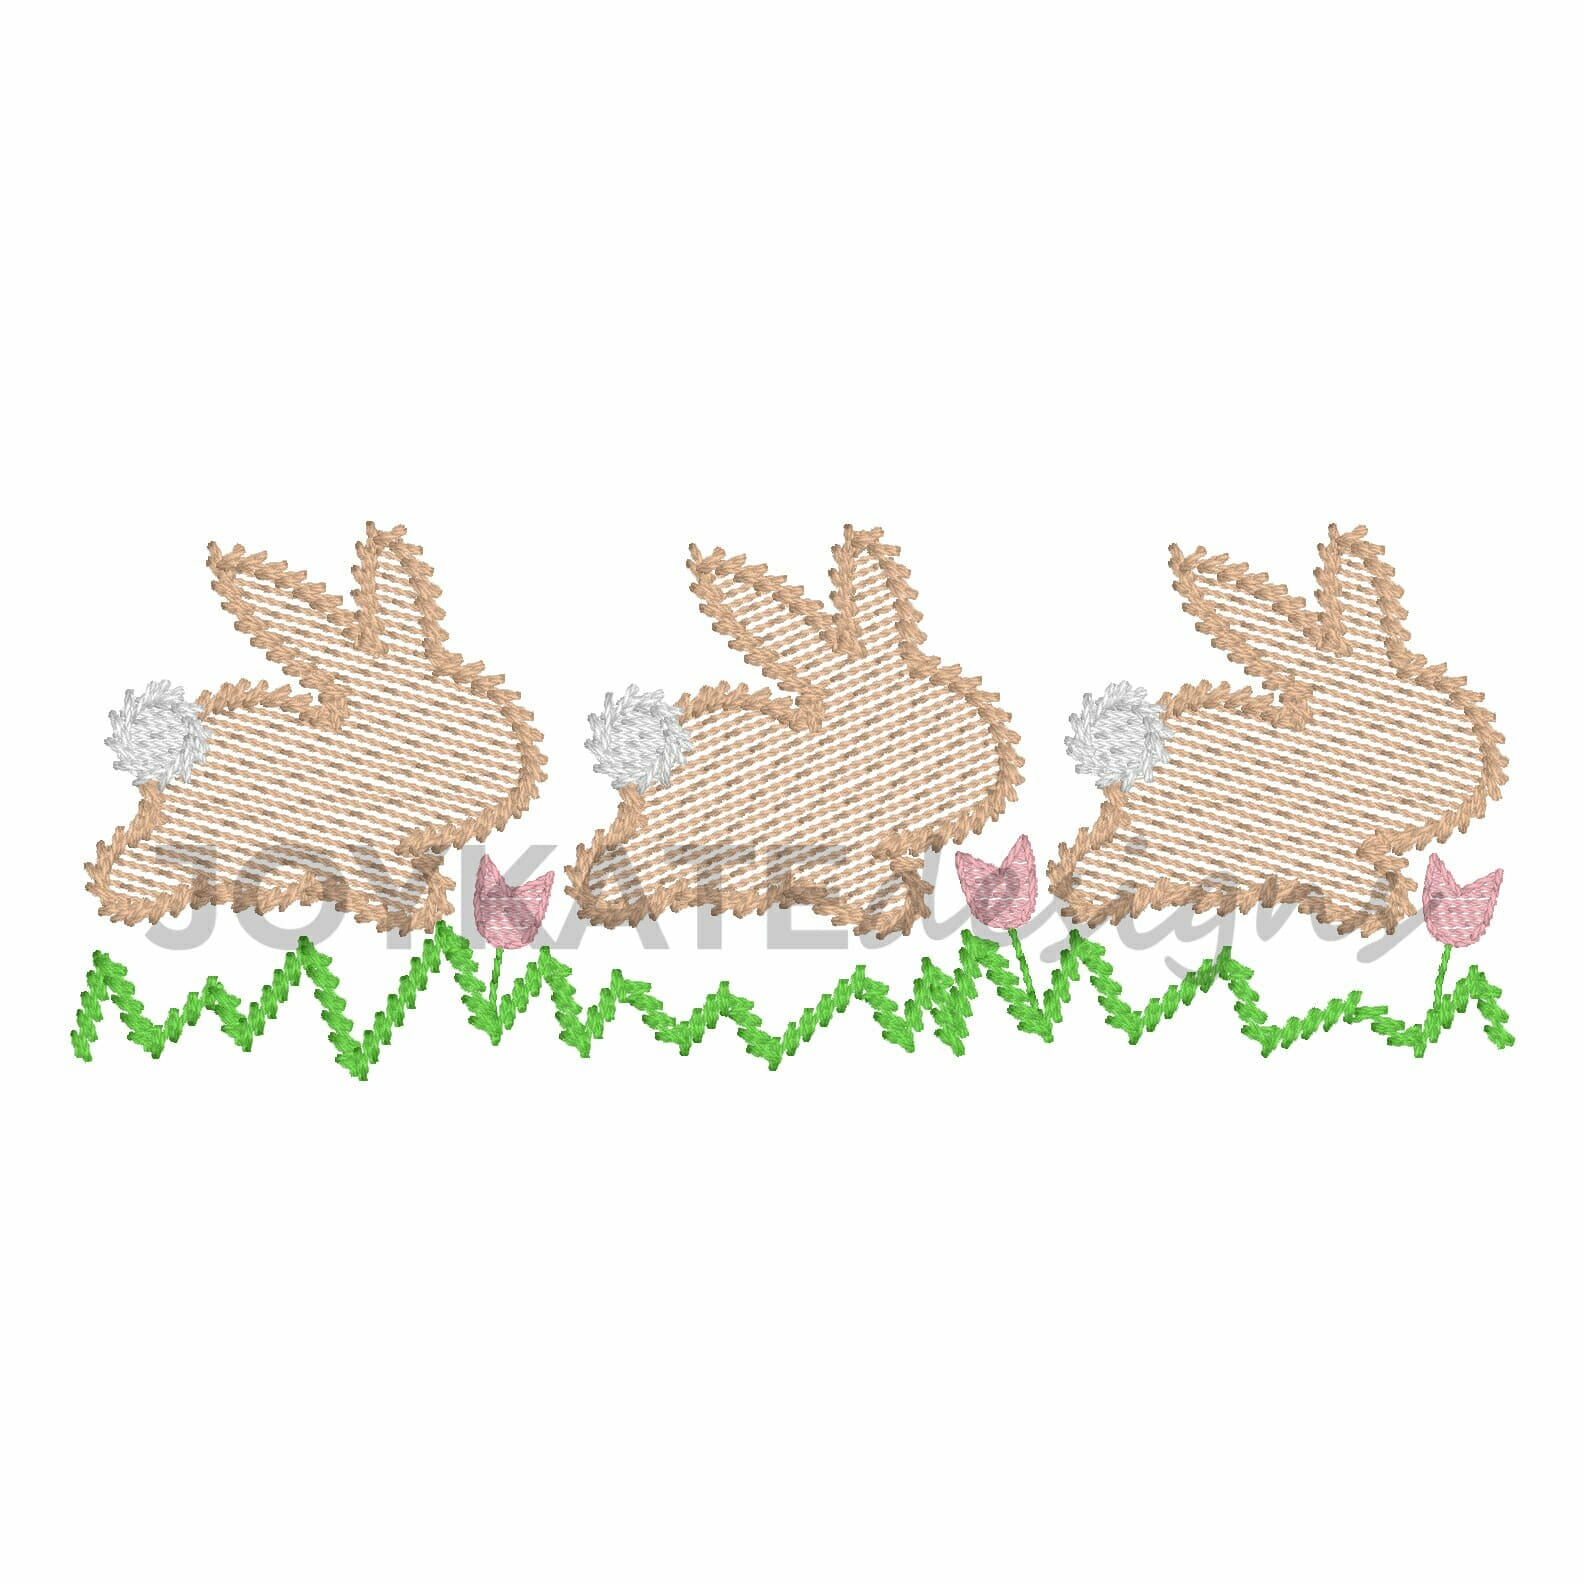 Bunnycup Embroidery Home Facebook Oukasfo